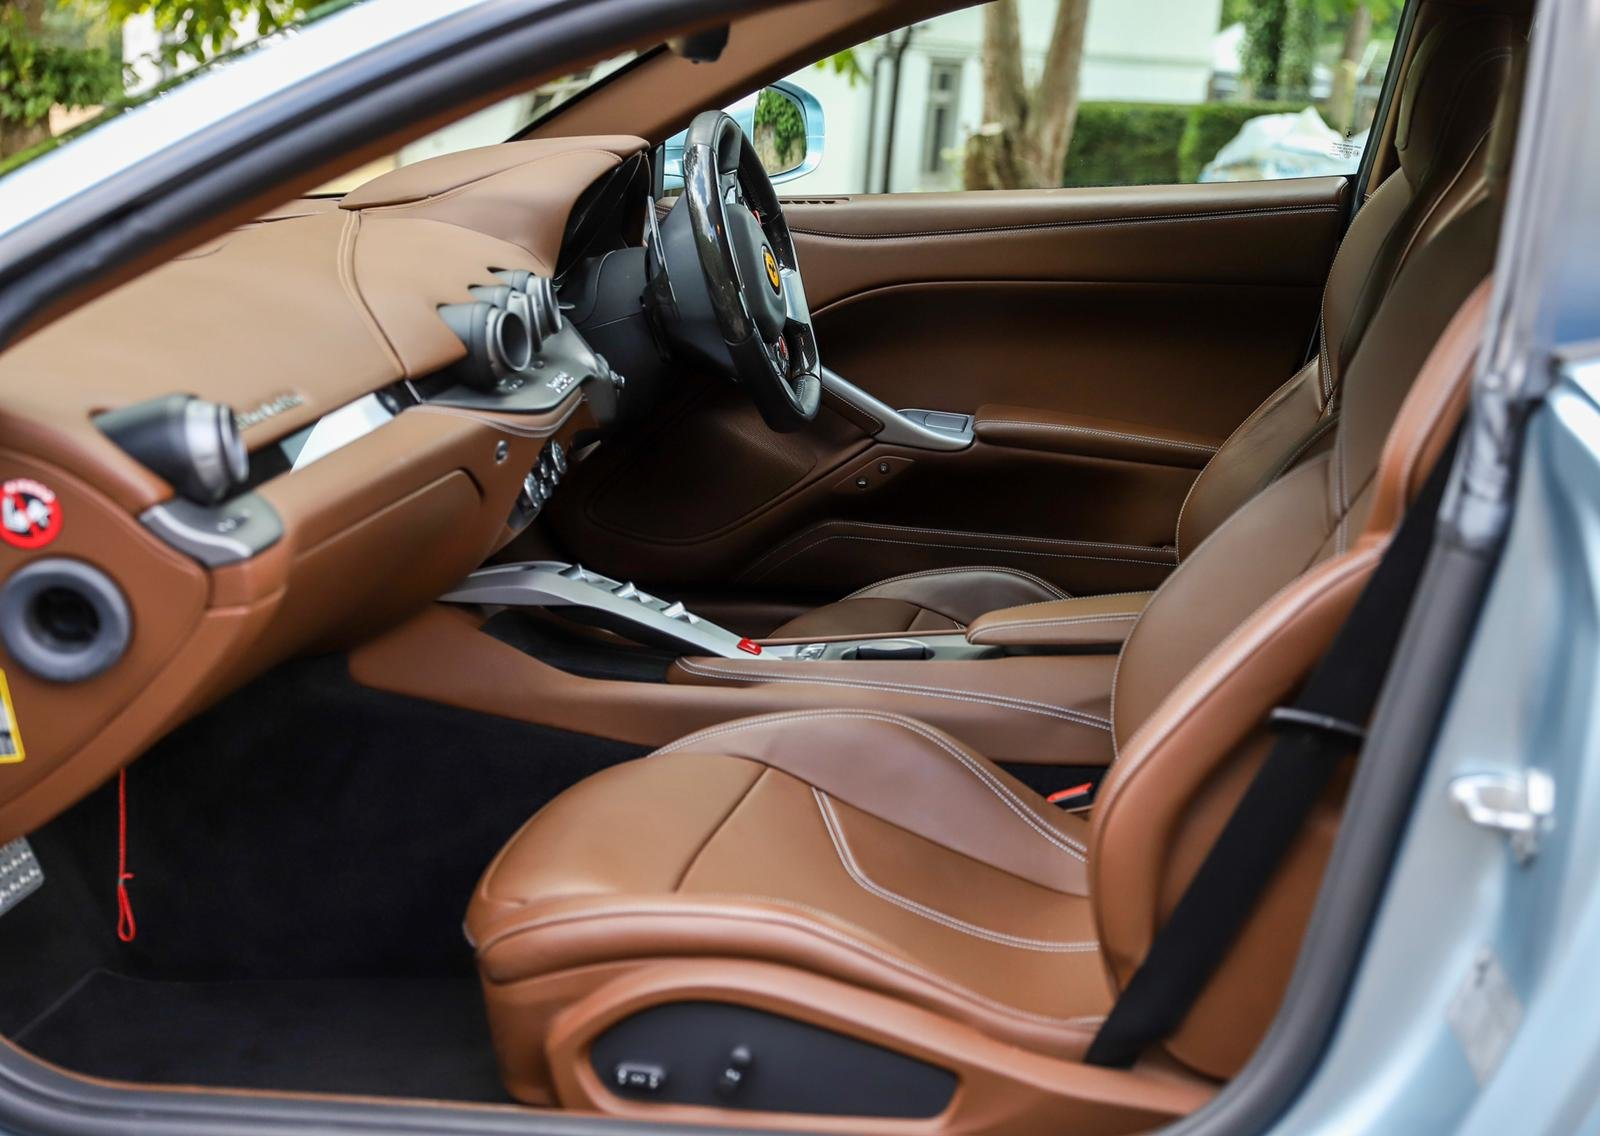 2013 STRIKING F12 - 2 OWNERS - EXTENDED WARRANTY - RECENT SERVICE For Sale (picture 5 of 6)